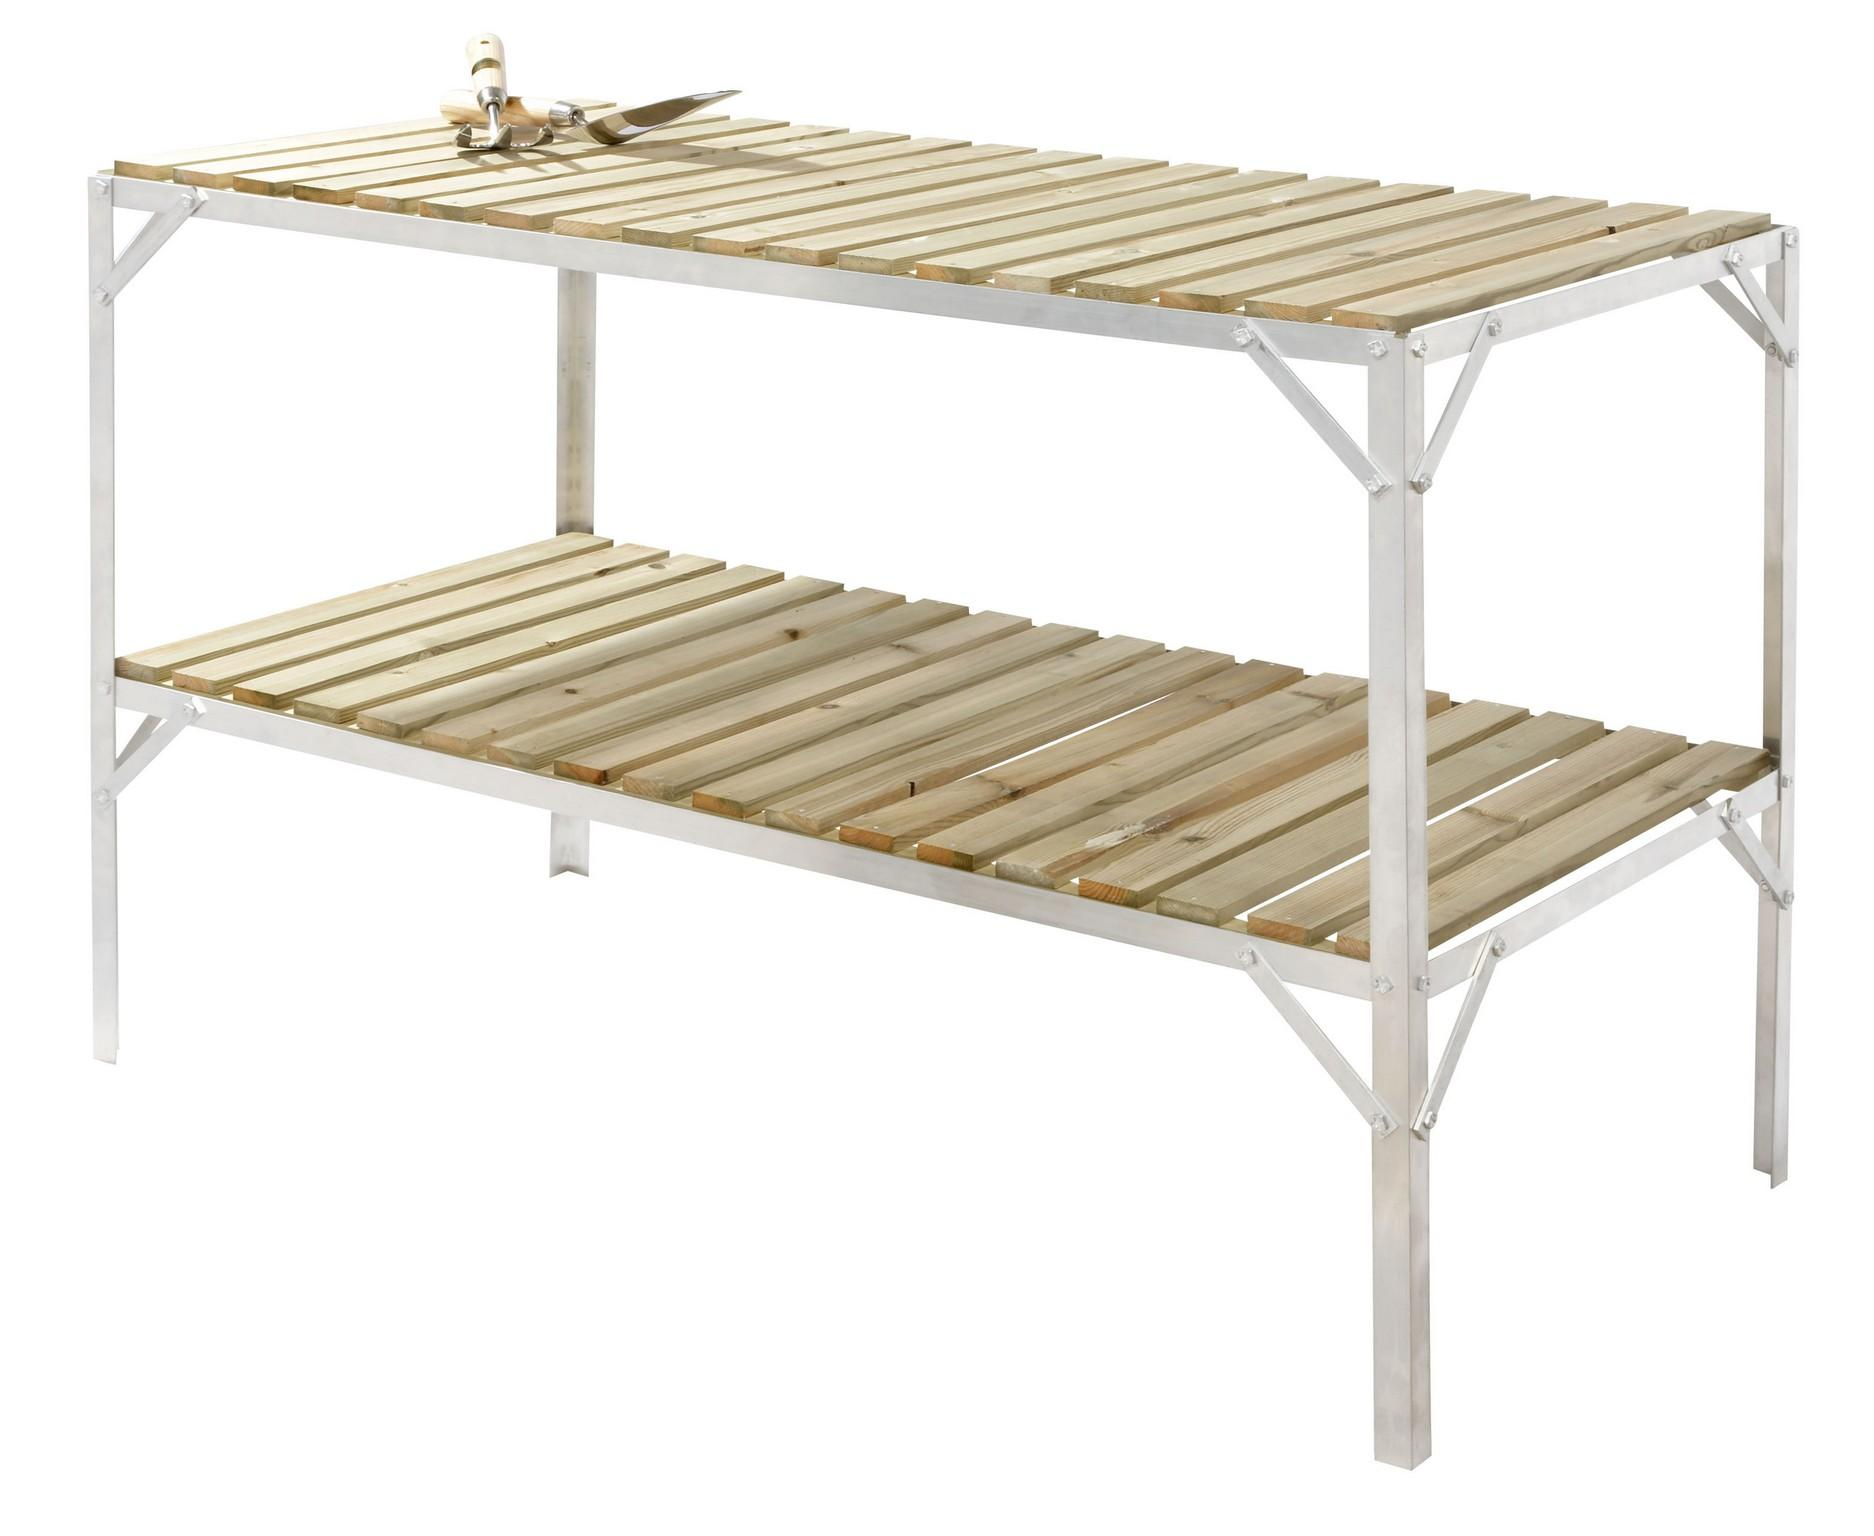 Greenhouse staging bench wooden two tier 2ft wide x 4ft - Wooden staging for greenhouse ...